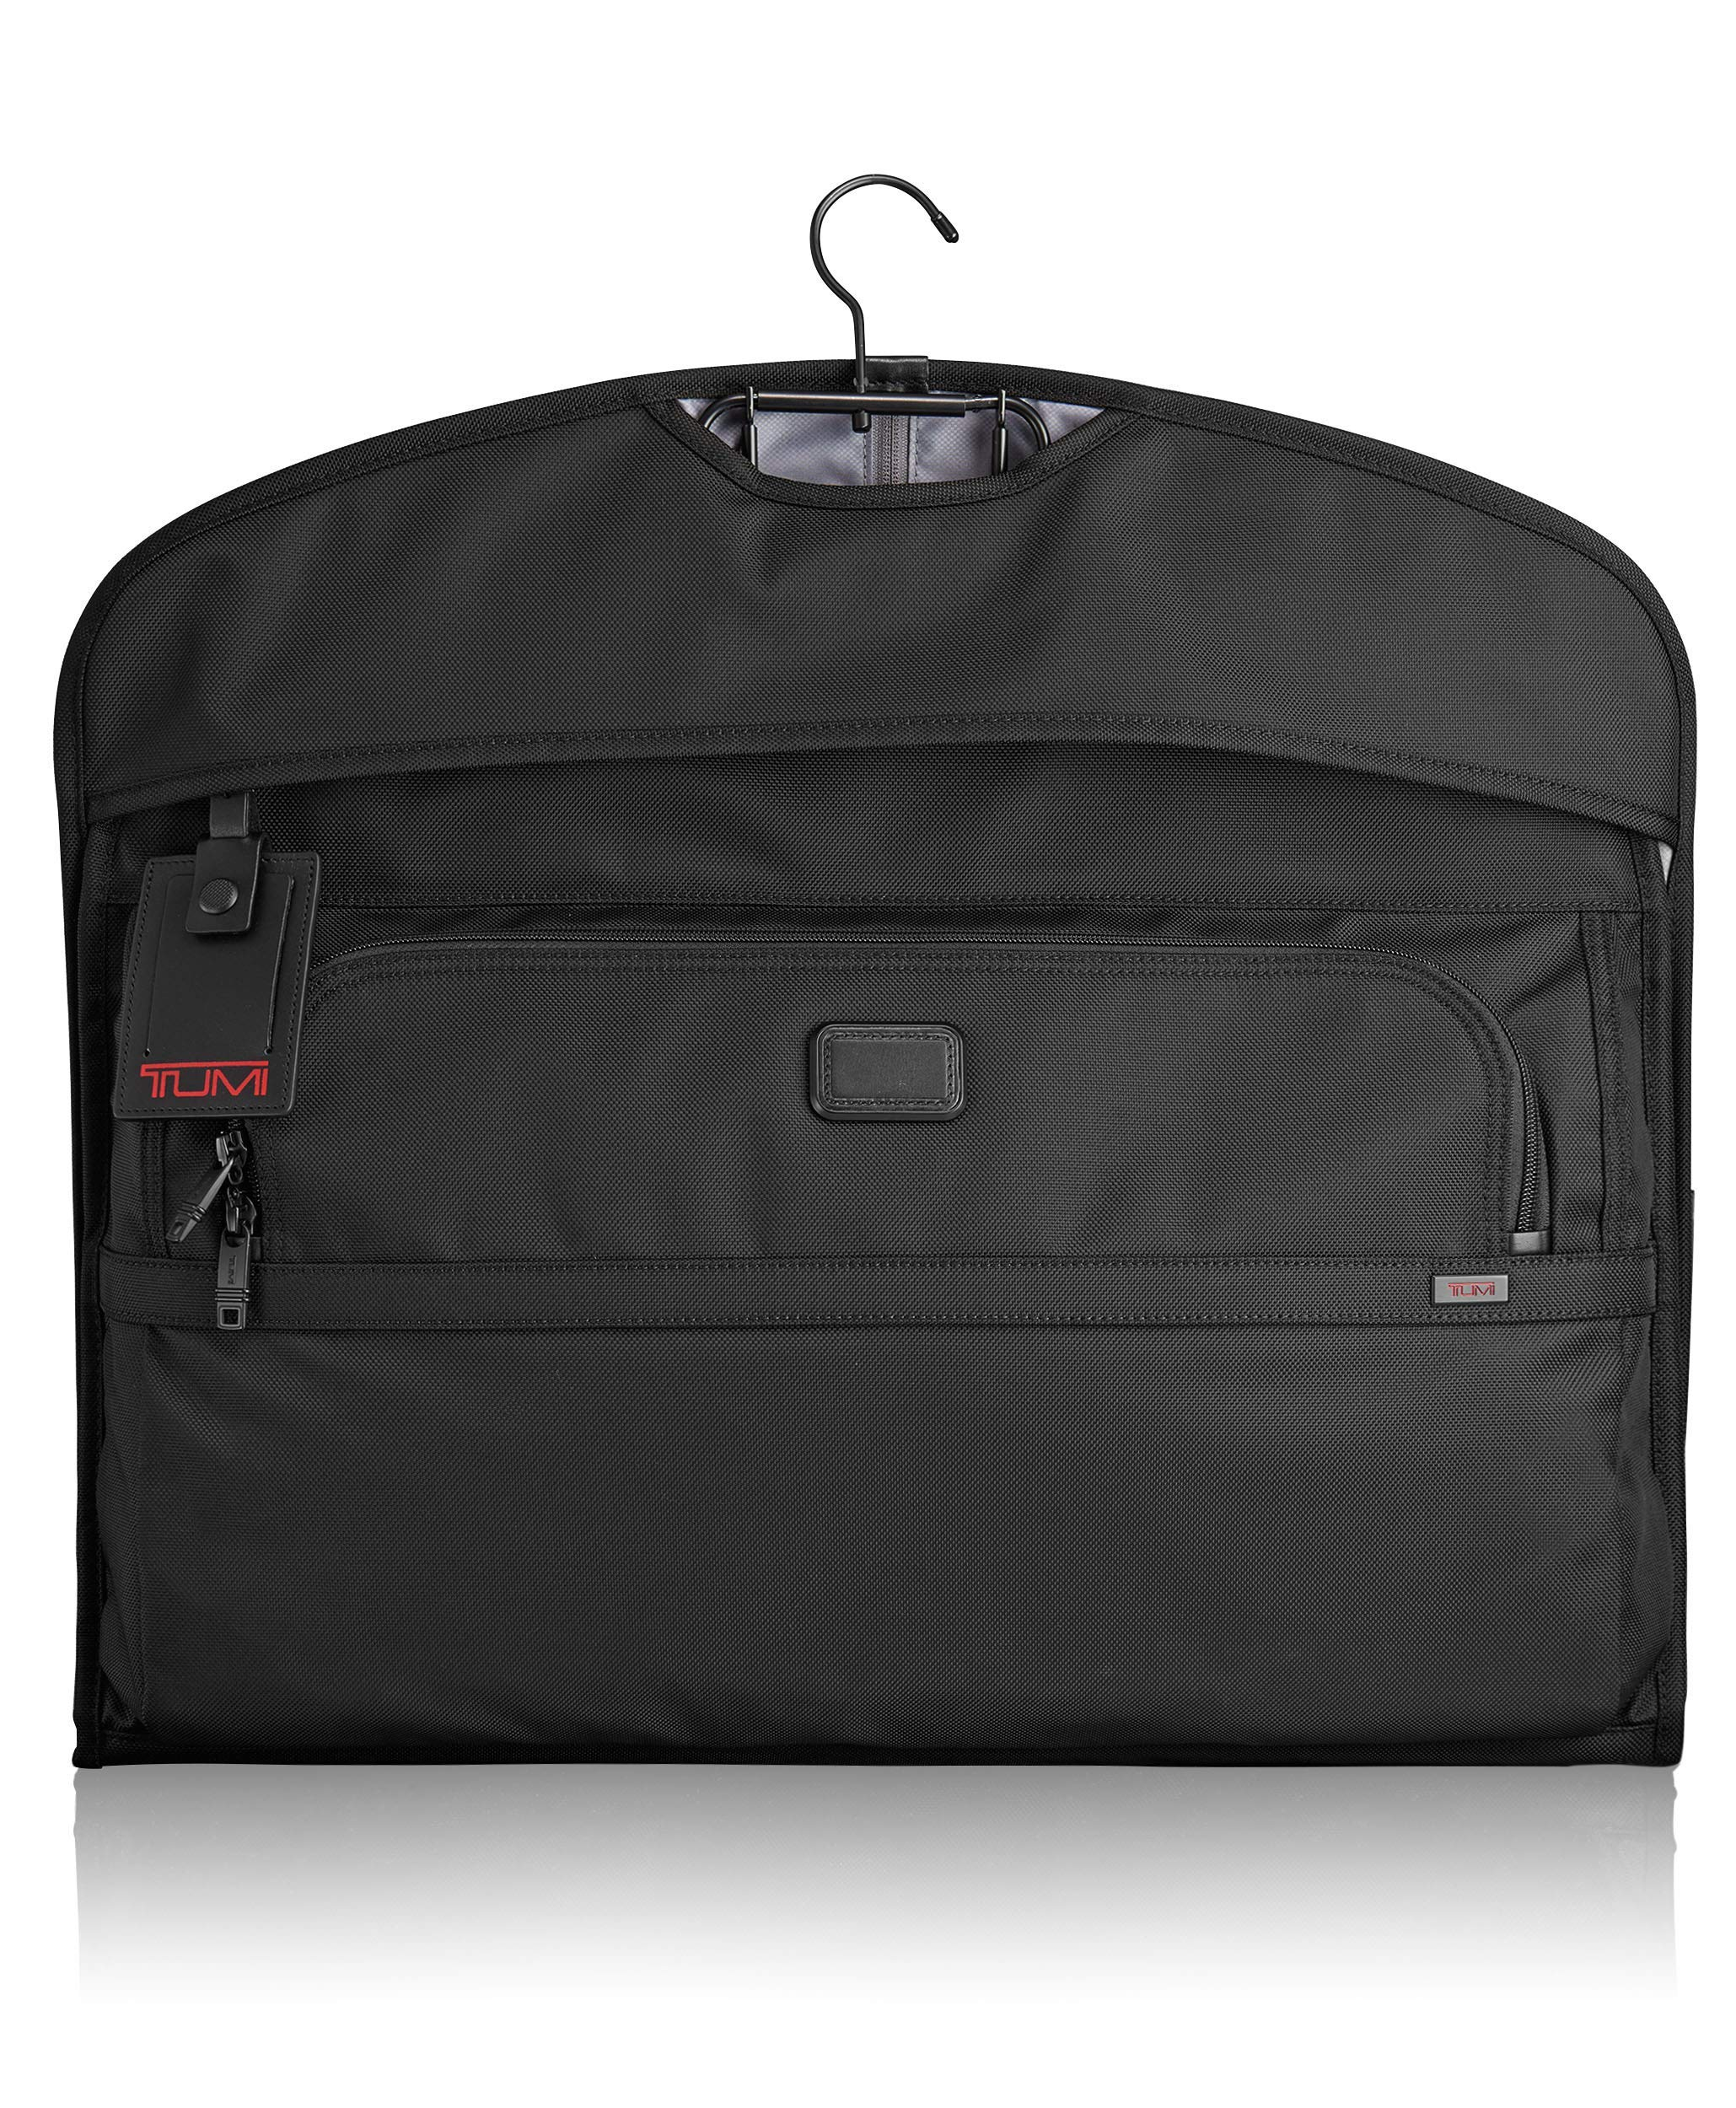 TUMI - Alpha 2 Garment Cover Bag - 1 Dress or Suit Bag for Men and Women - Black